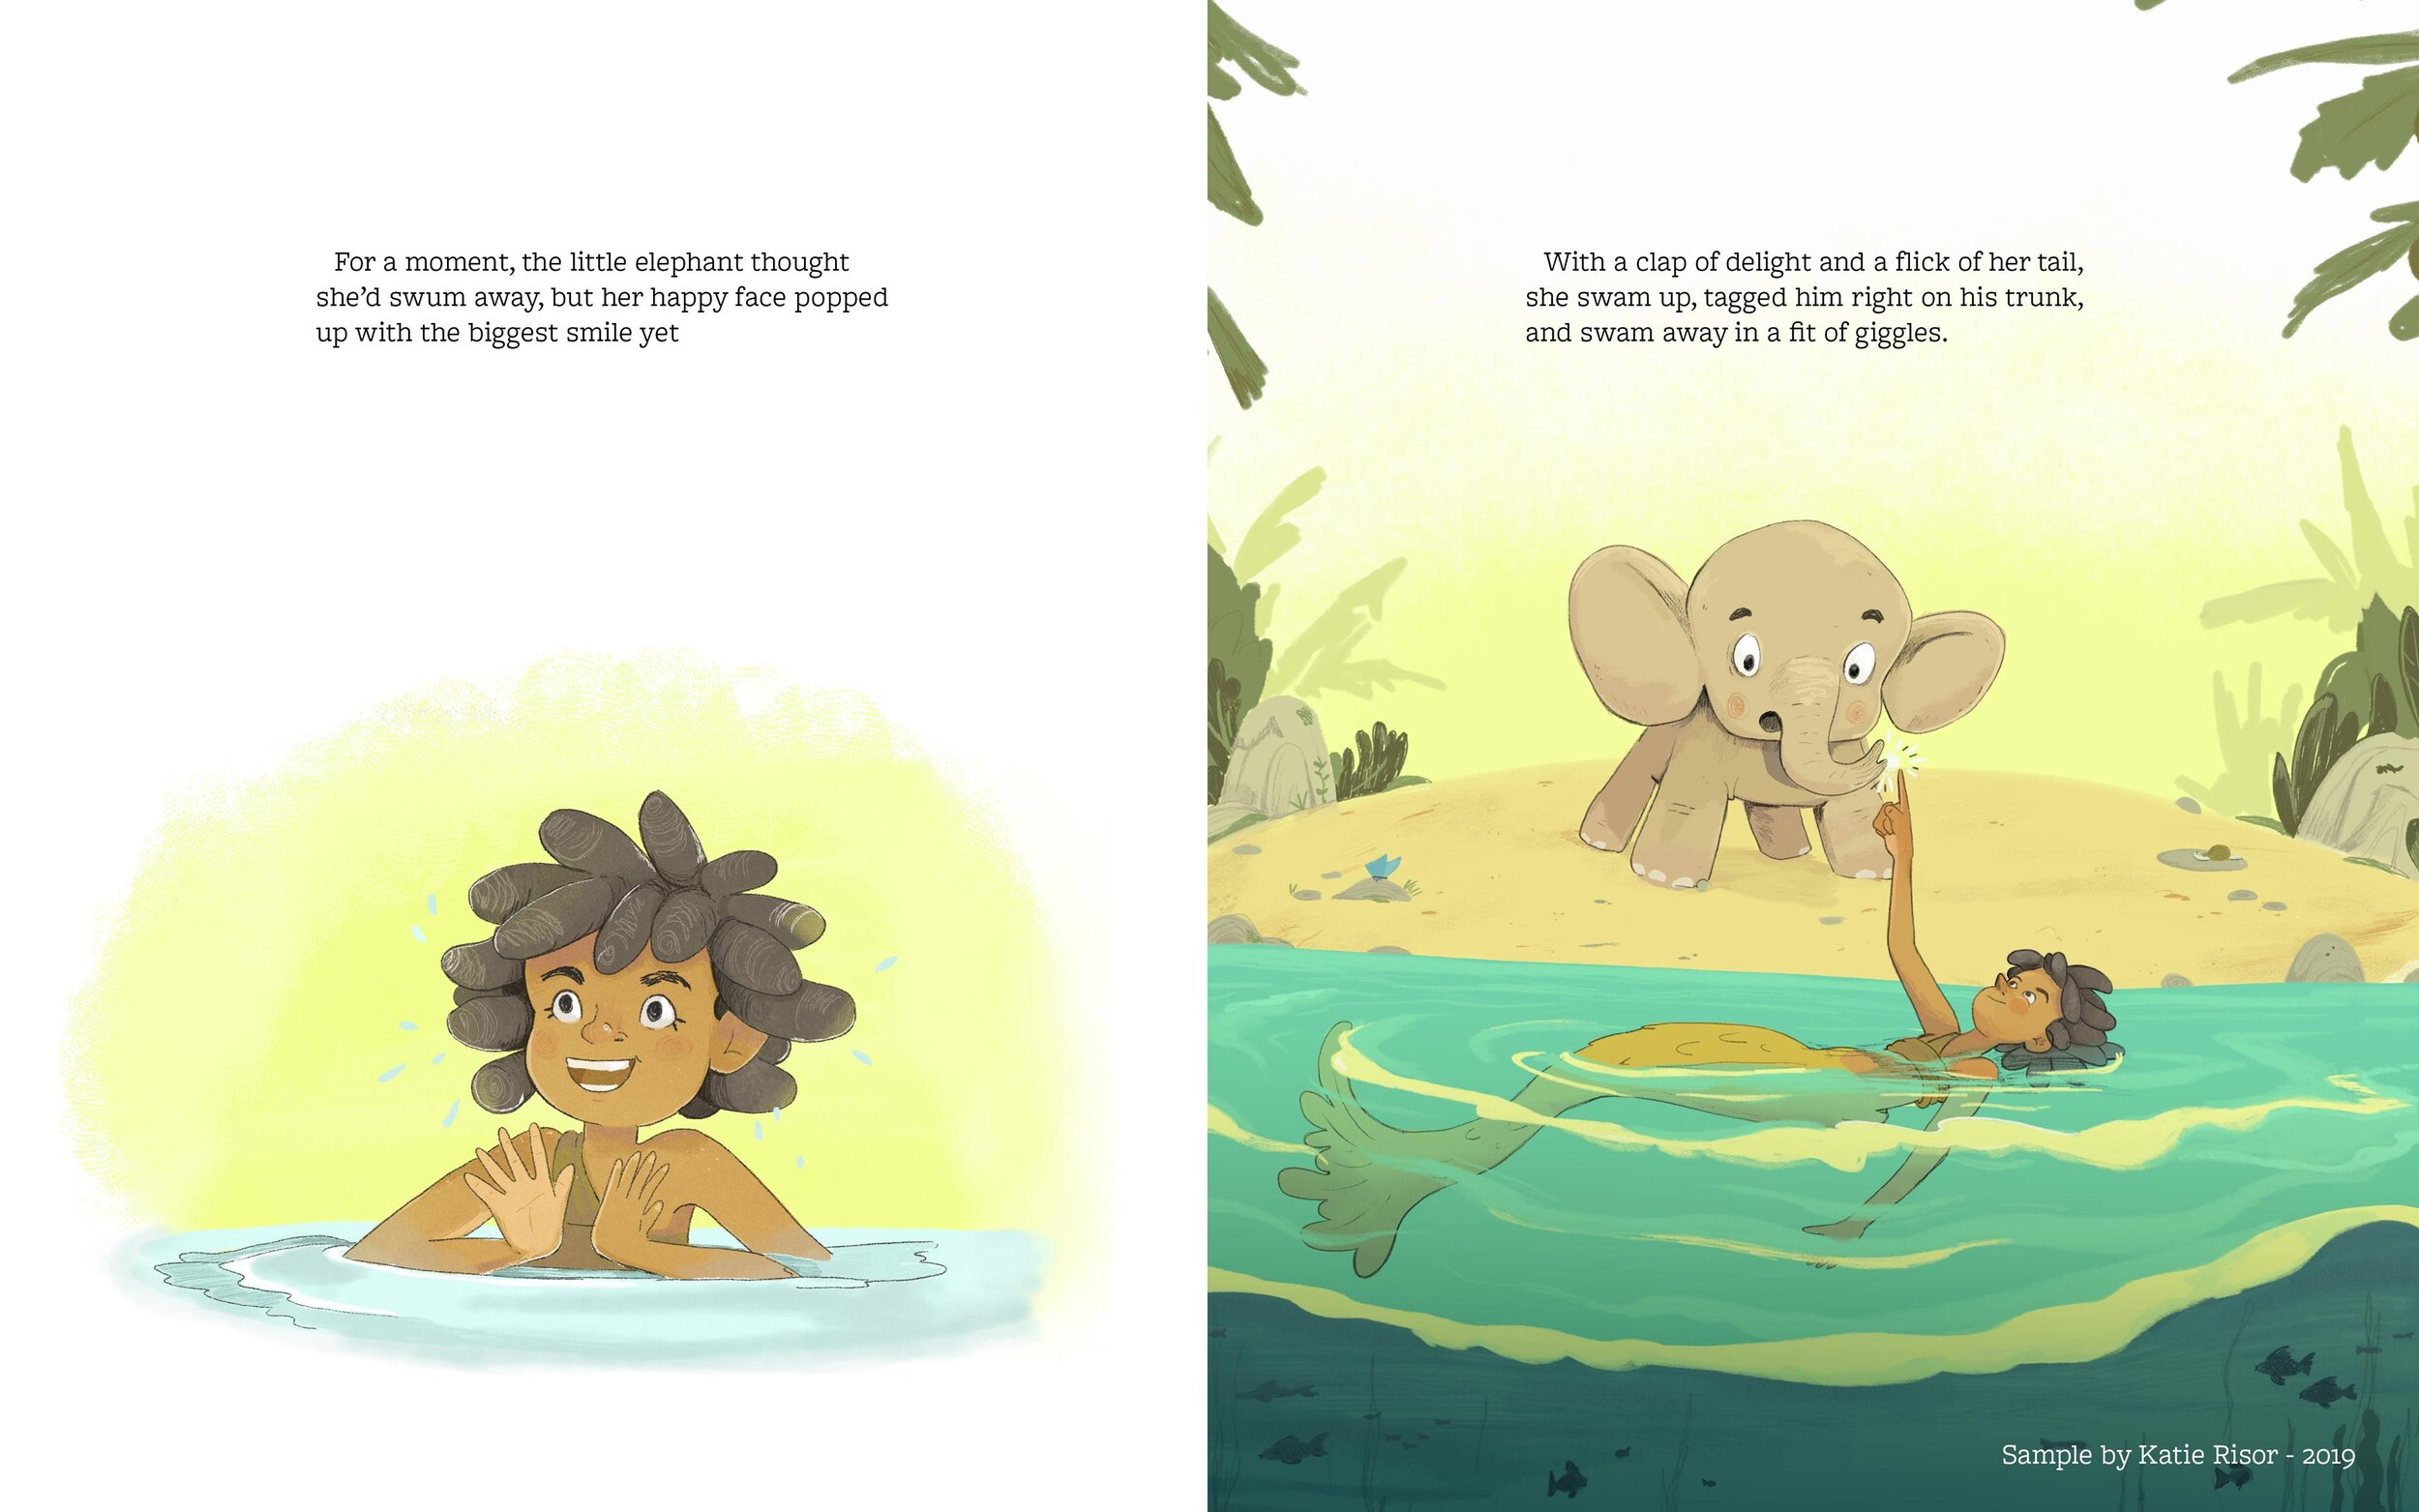 A sample spread for an unpublished book I wrote called  Splash!